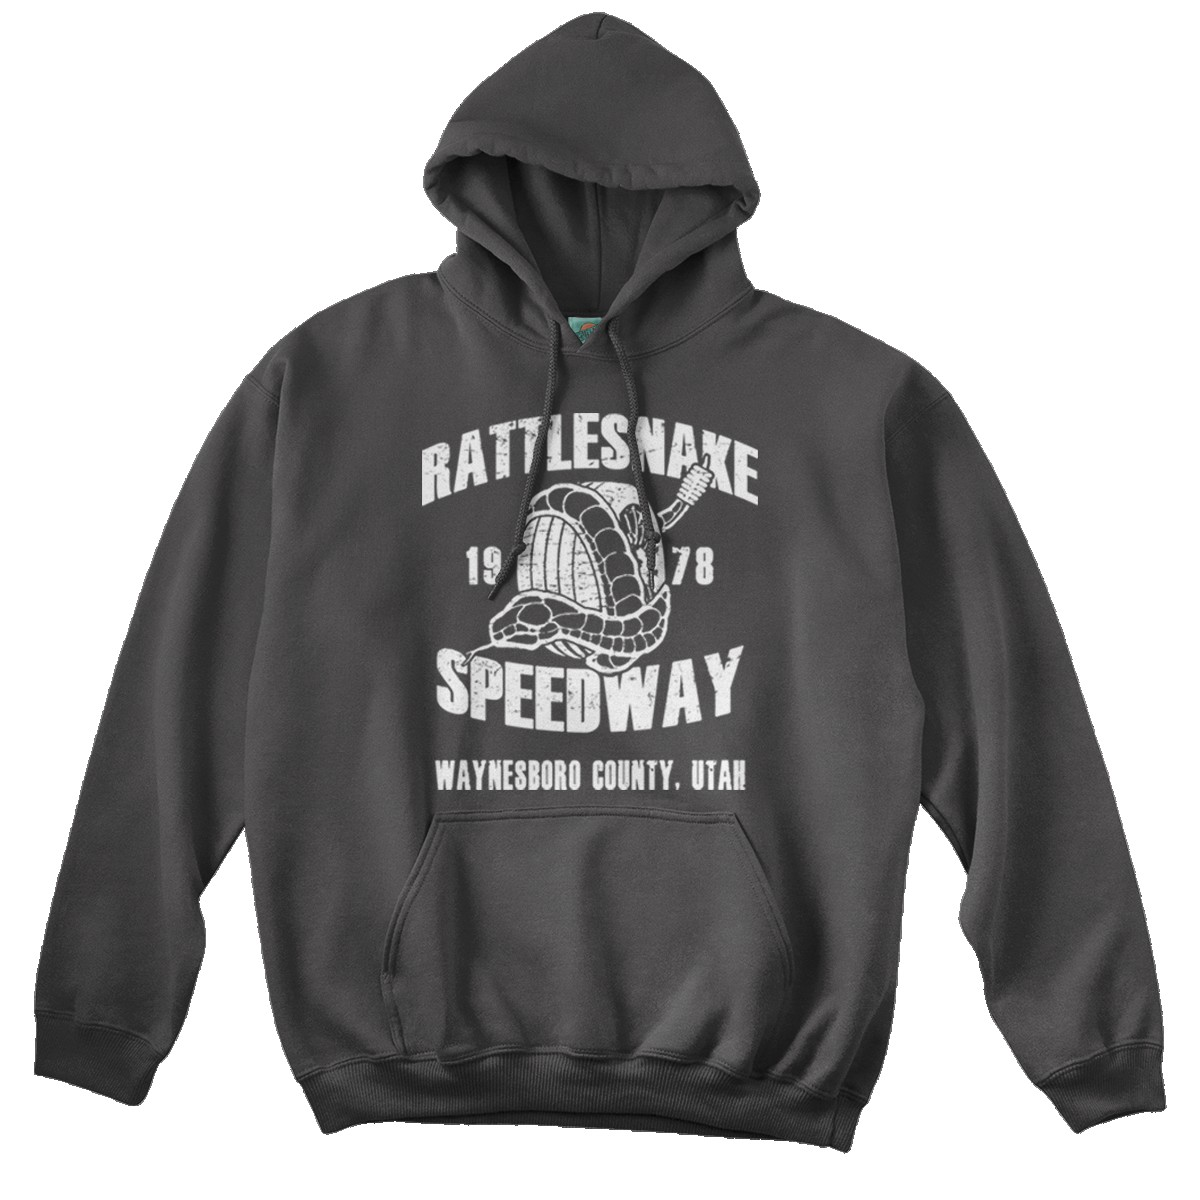 Bruce-Springsteen-Promised-Land-Rattlesnake-Speedway-inspired-Hoodie